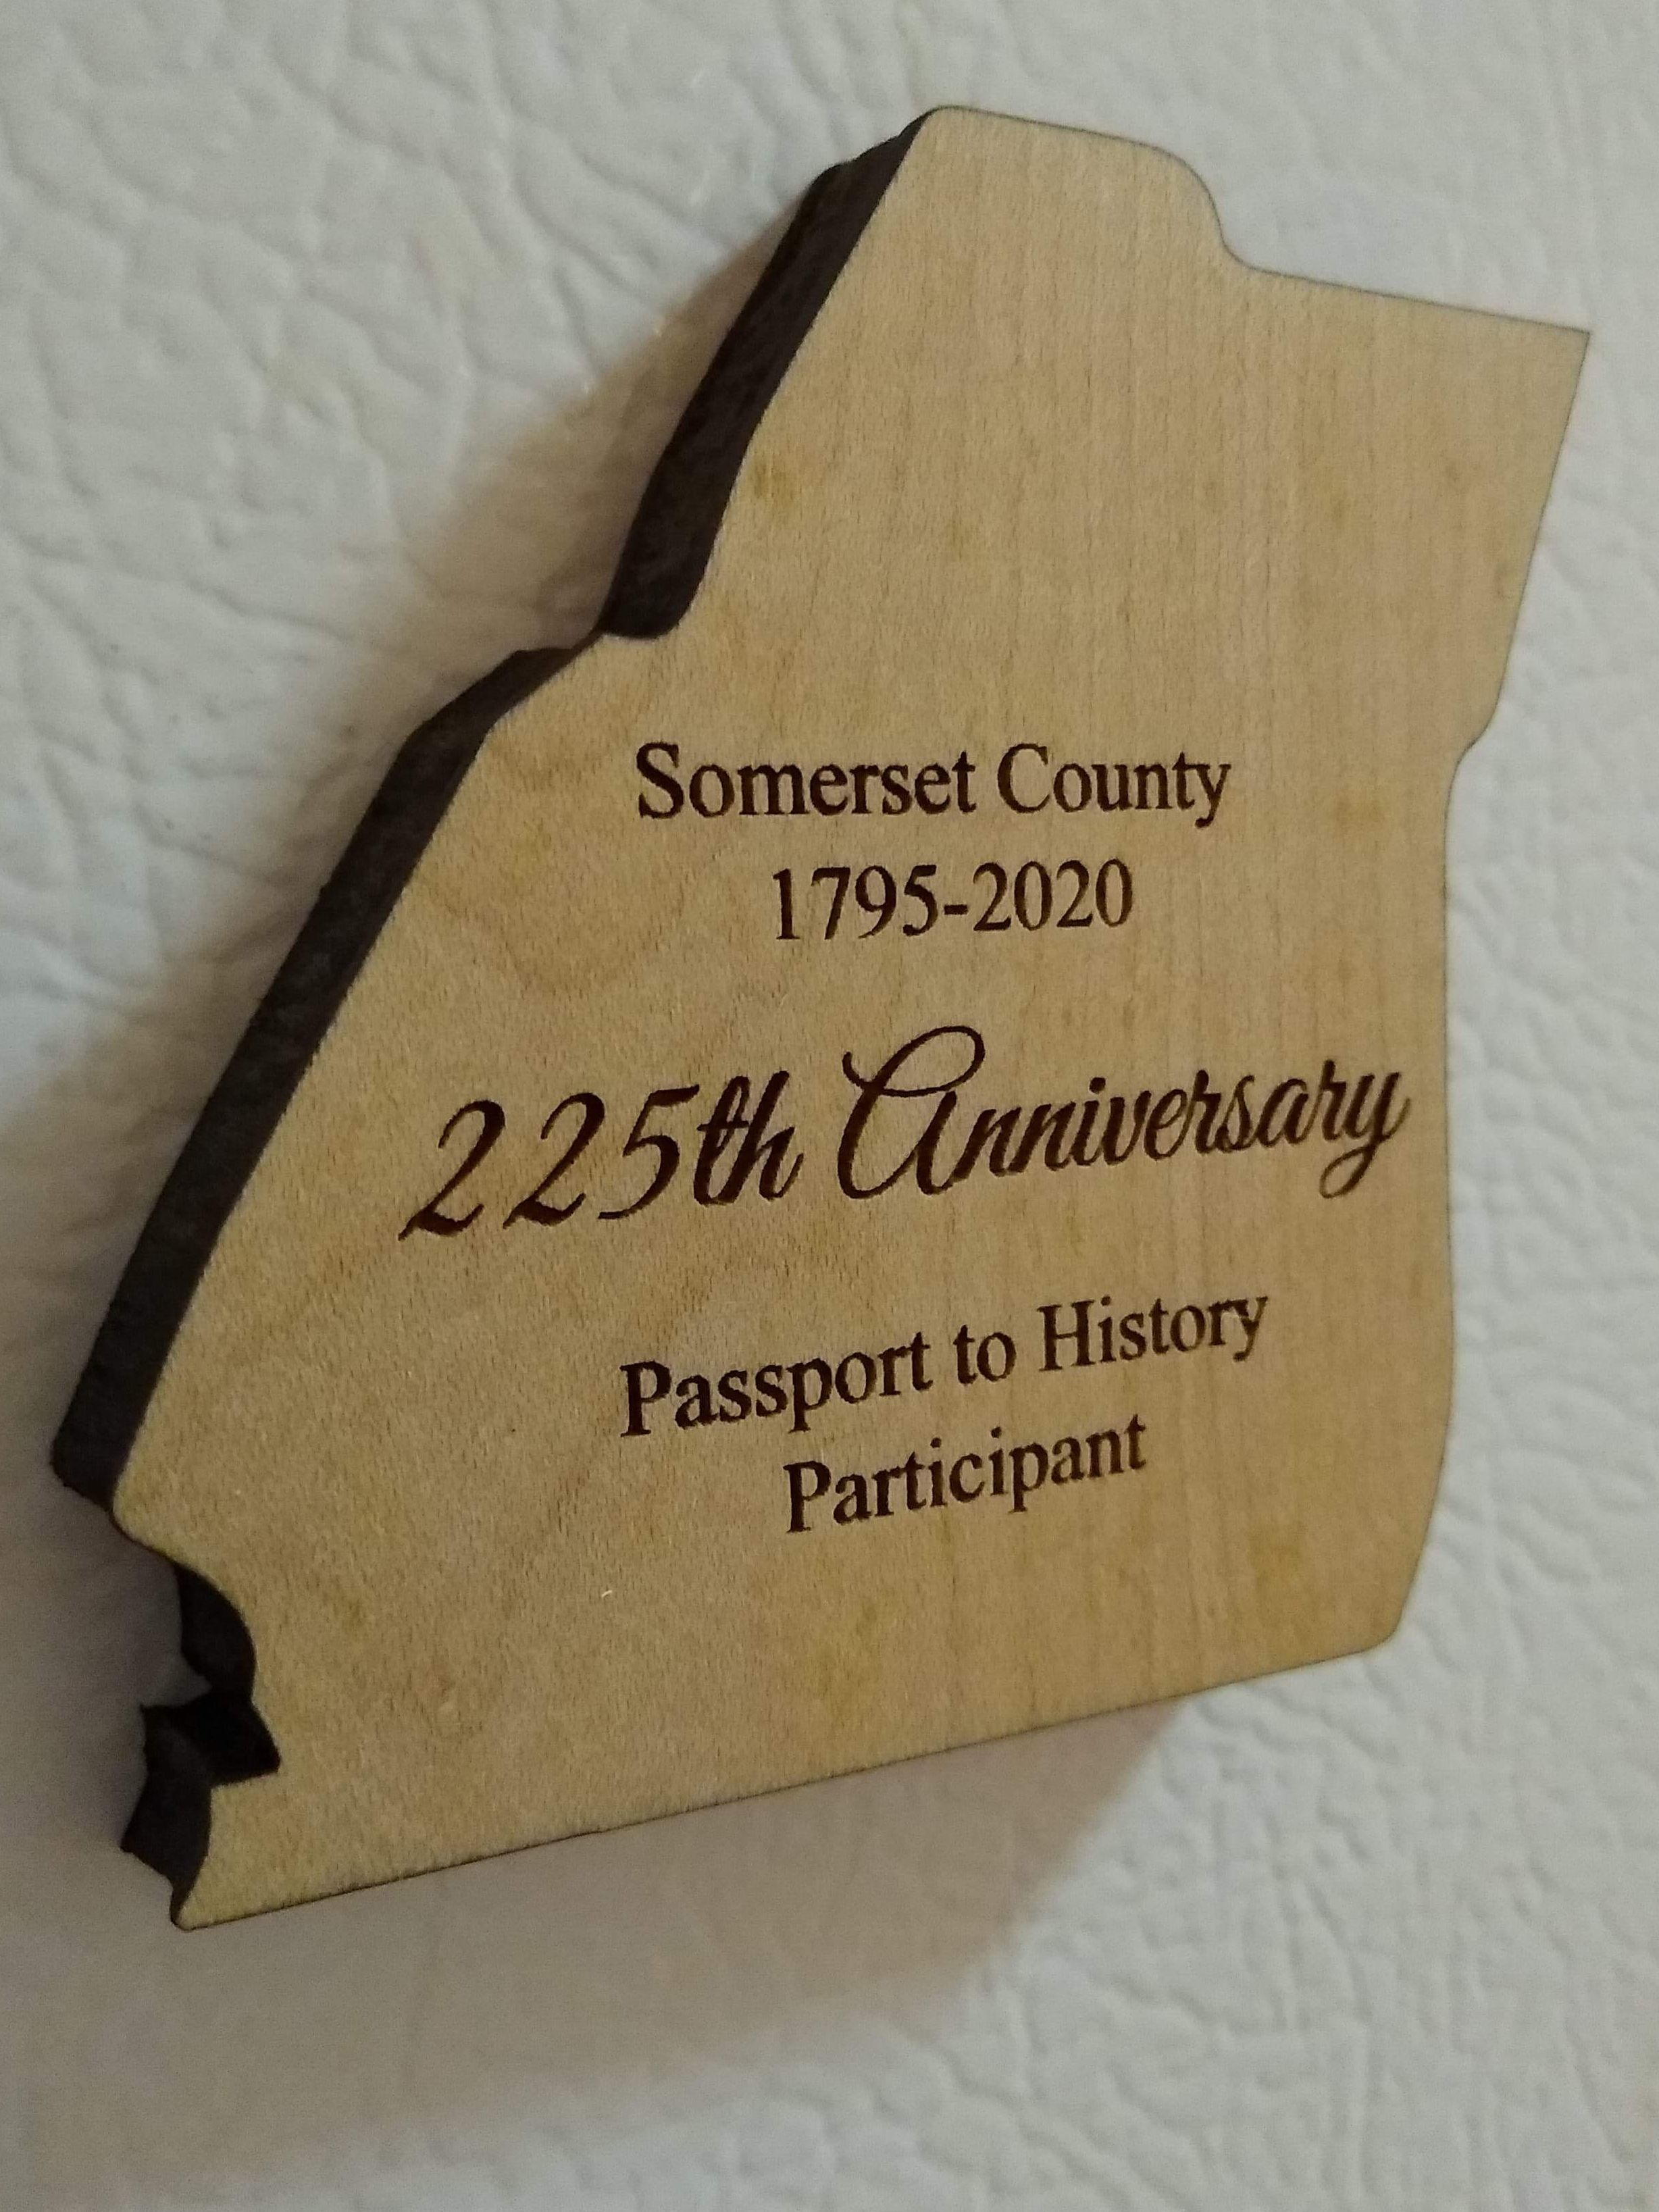 Laser cut keepsake shaped like the borders of Somerset County